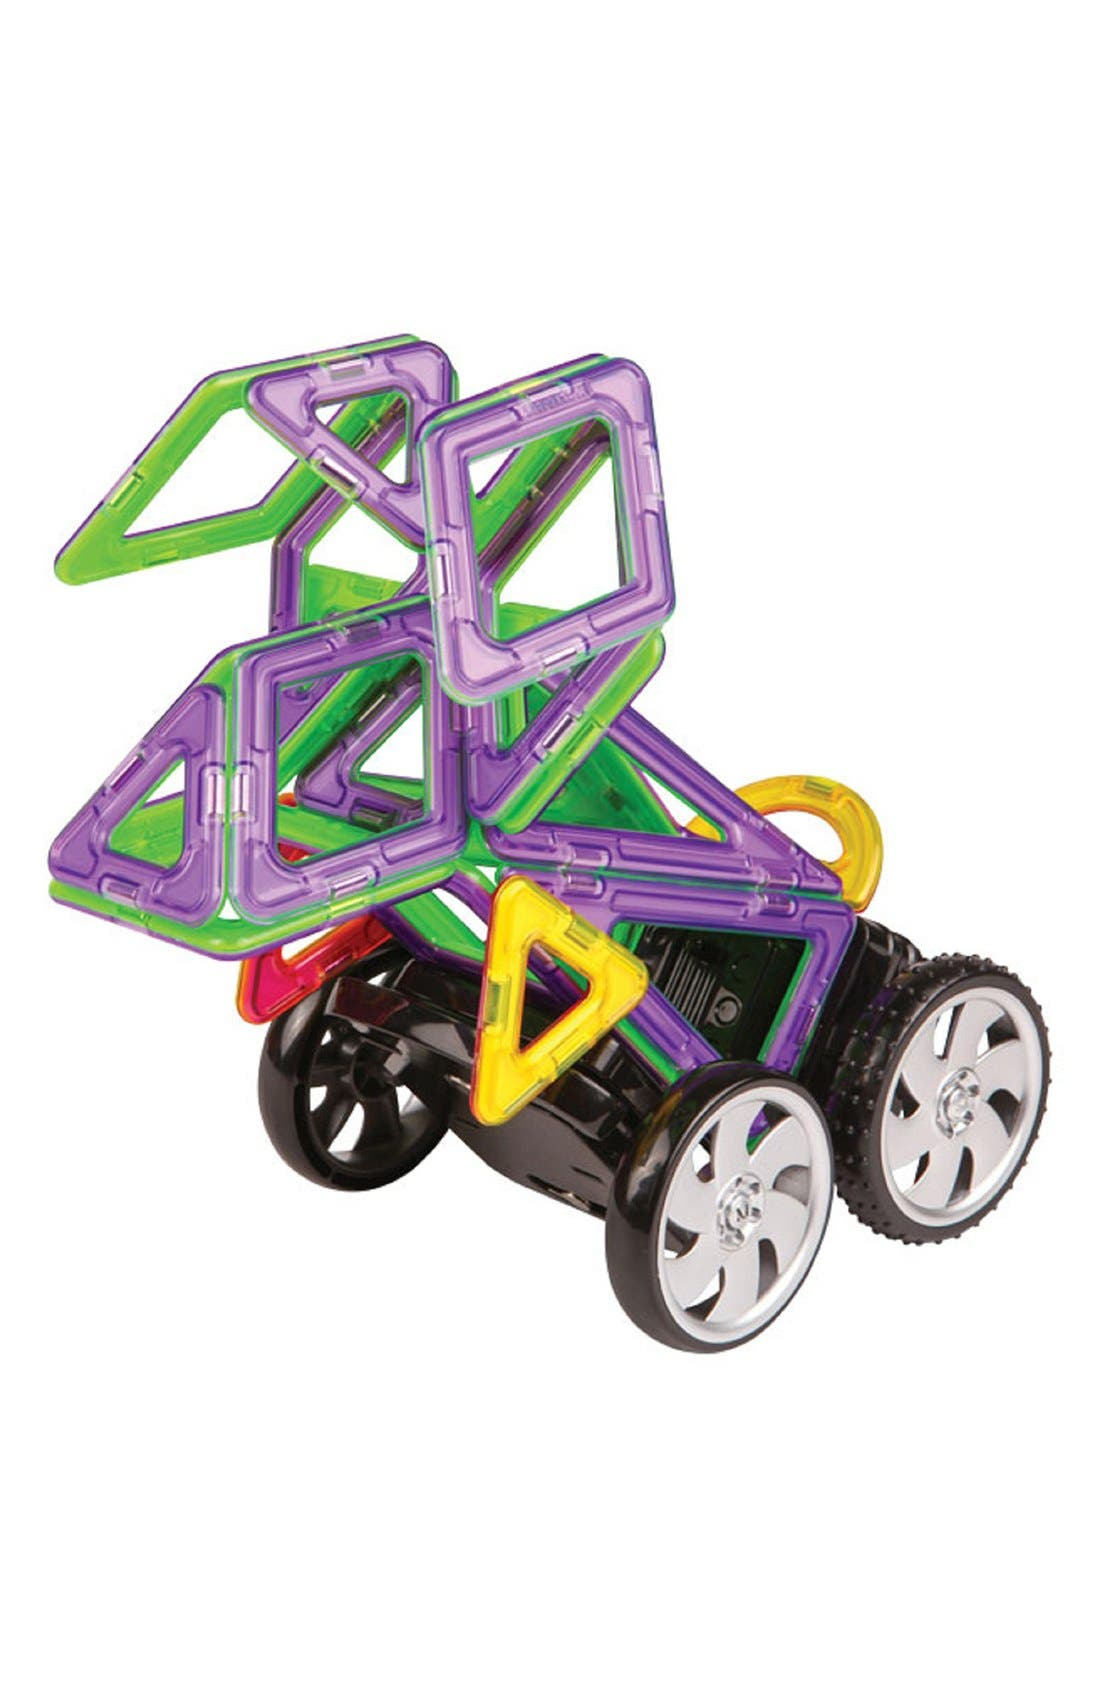 'Zoo Racing' Magnetic Remote Control Vehicle Construction Set,                             Alternate thumbnail 5, color,                             Rainbow